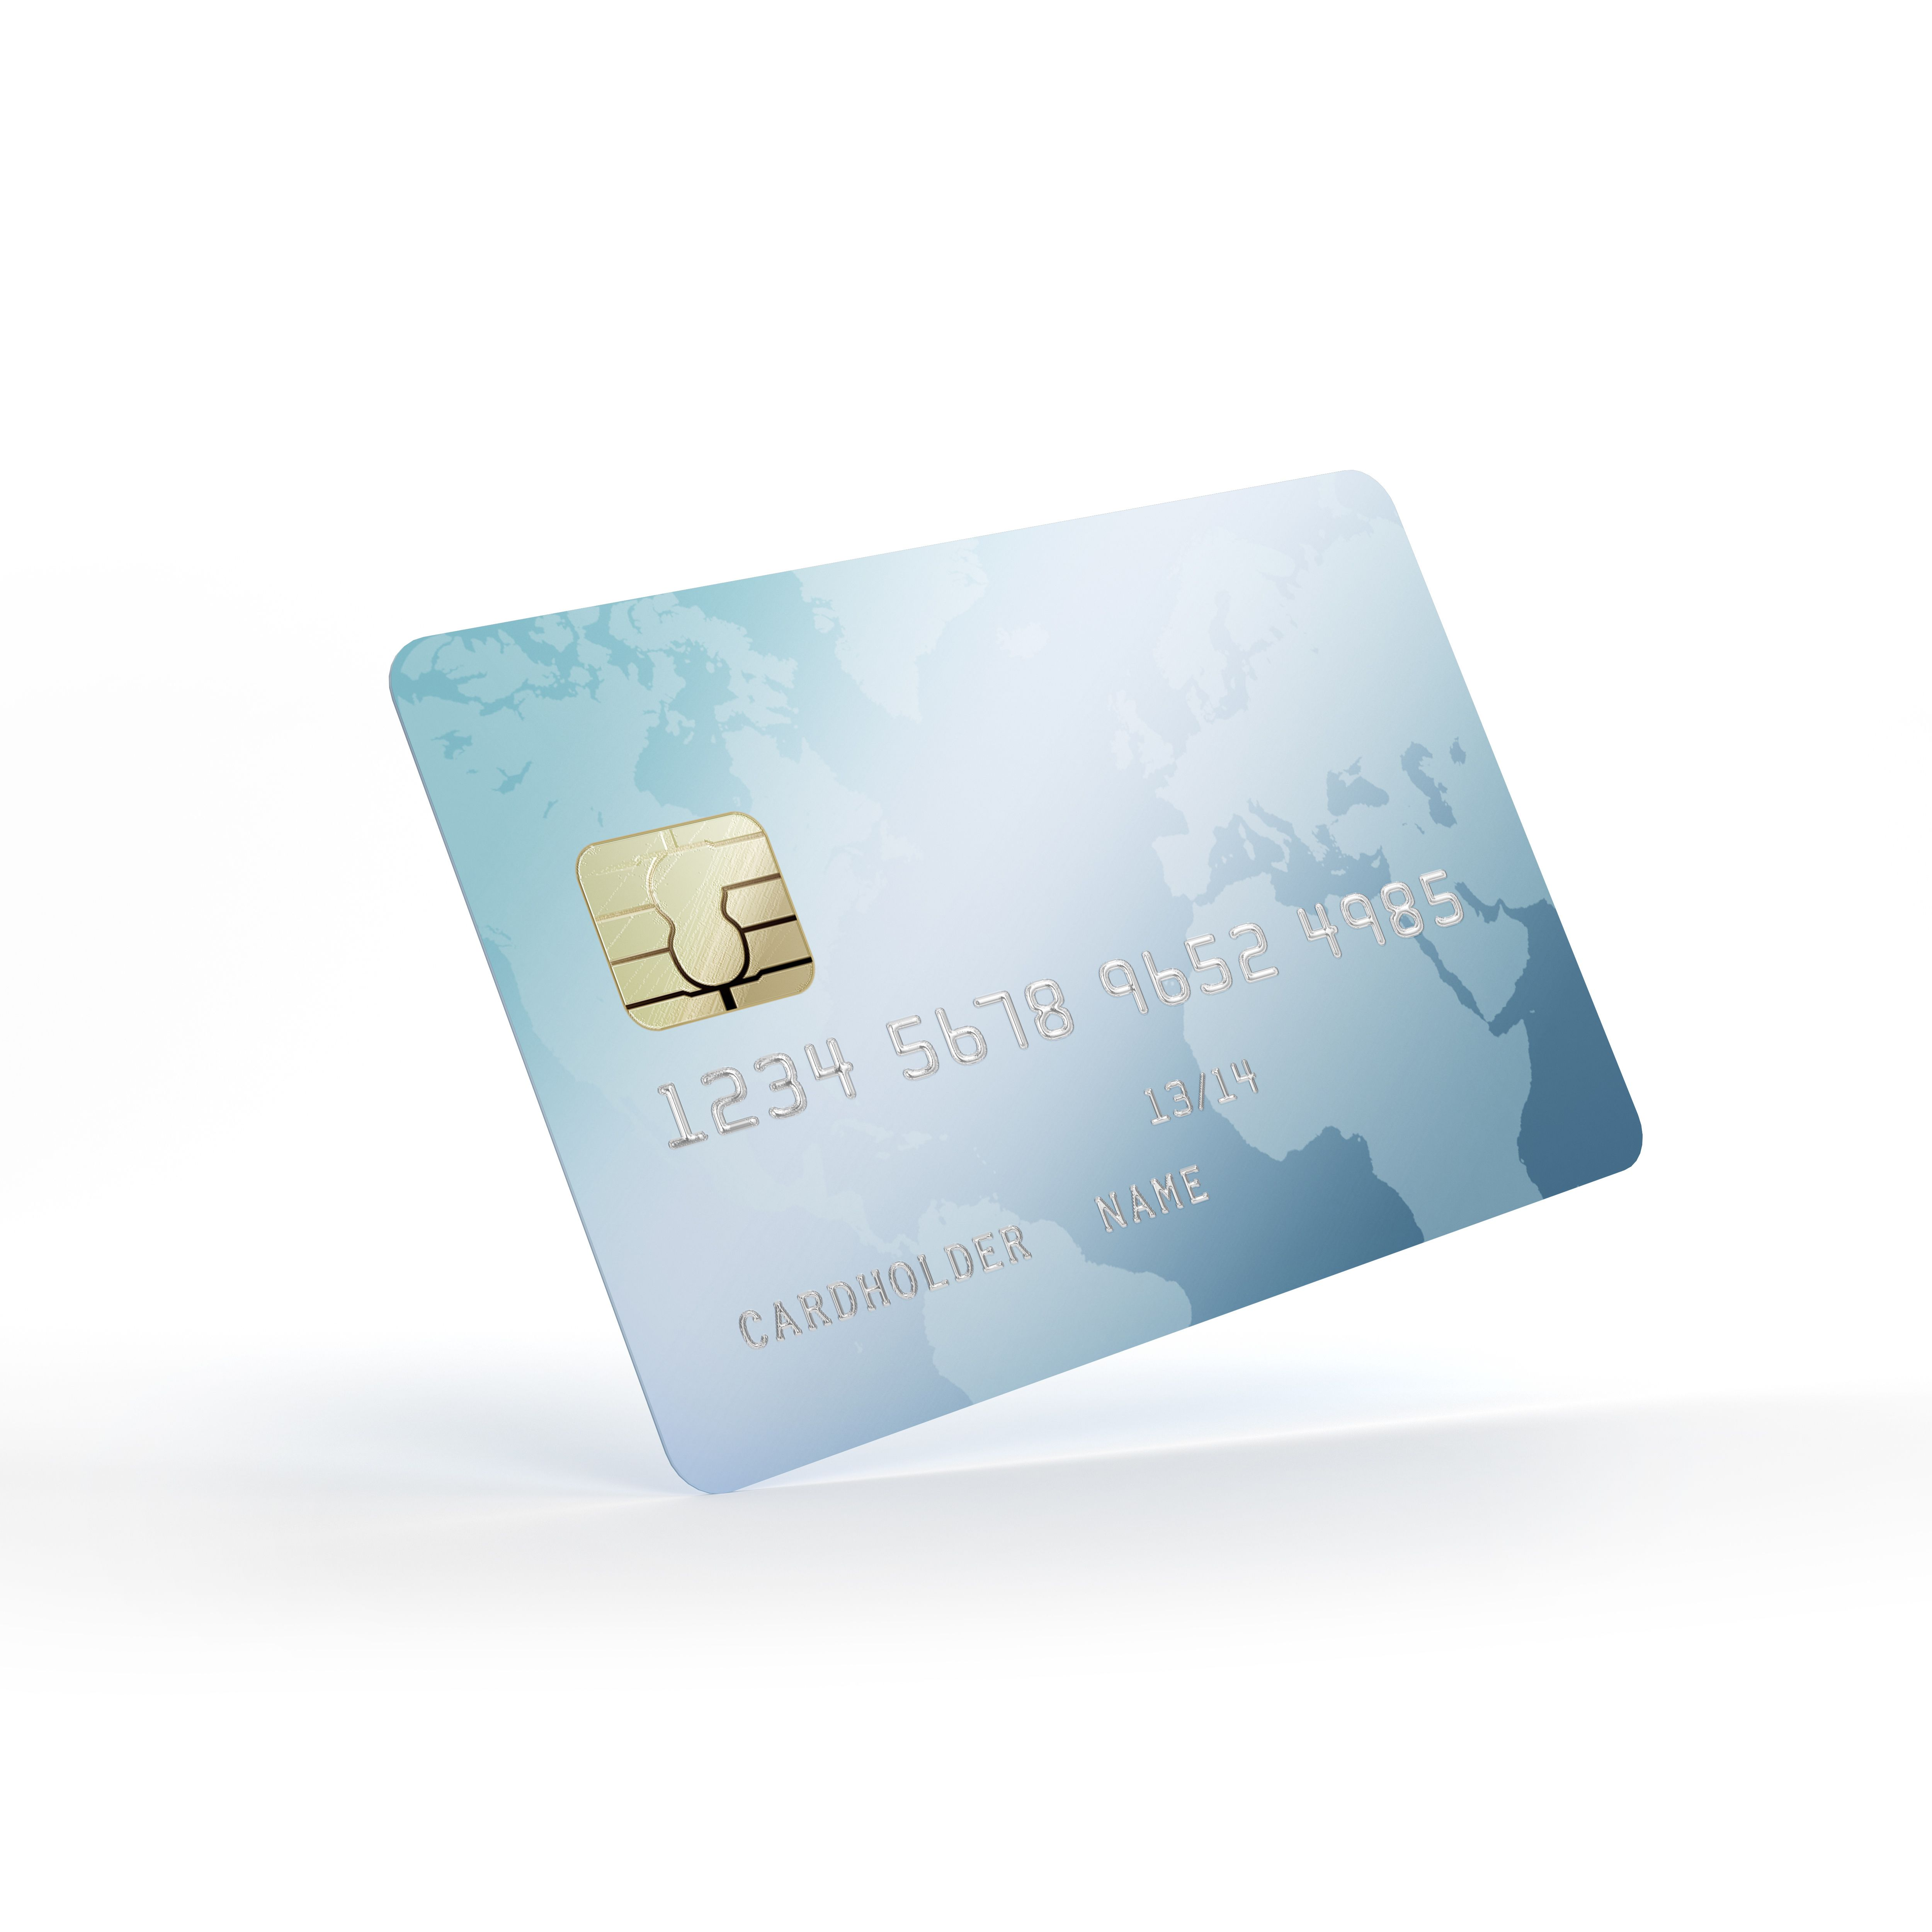 credit card services definition